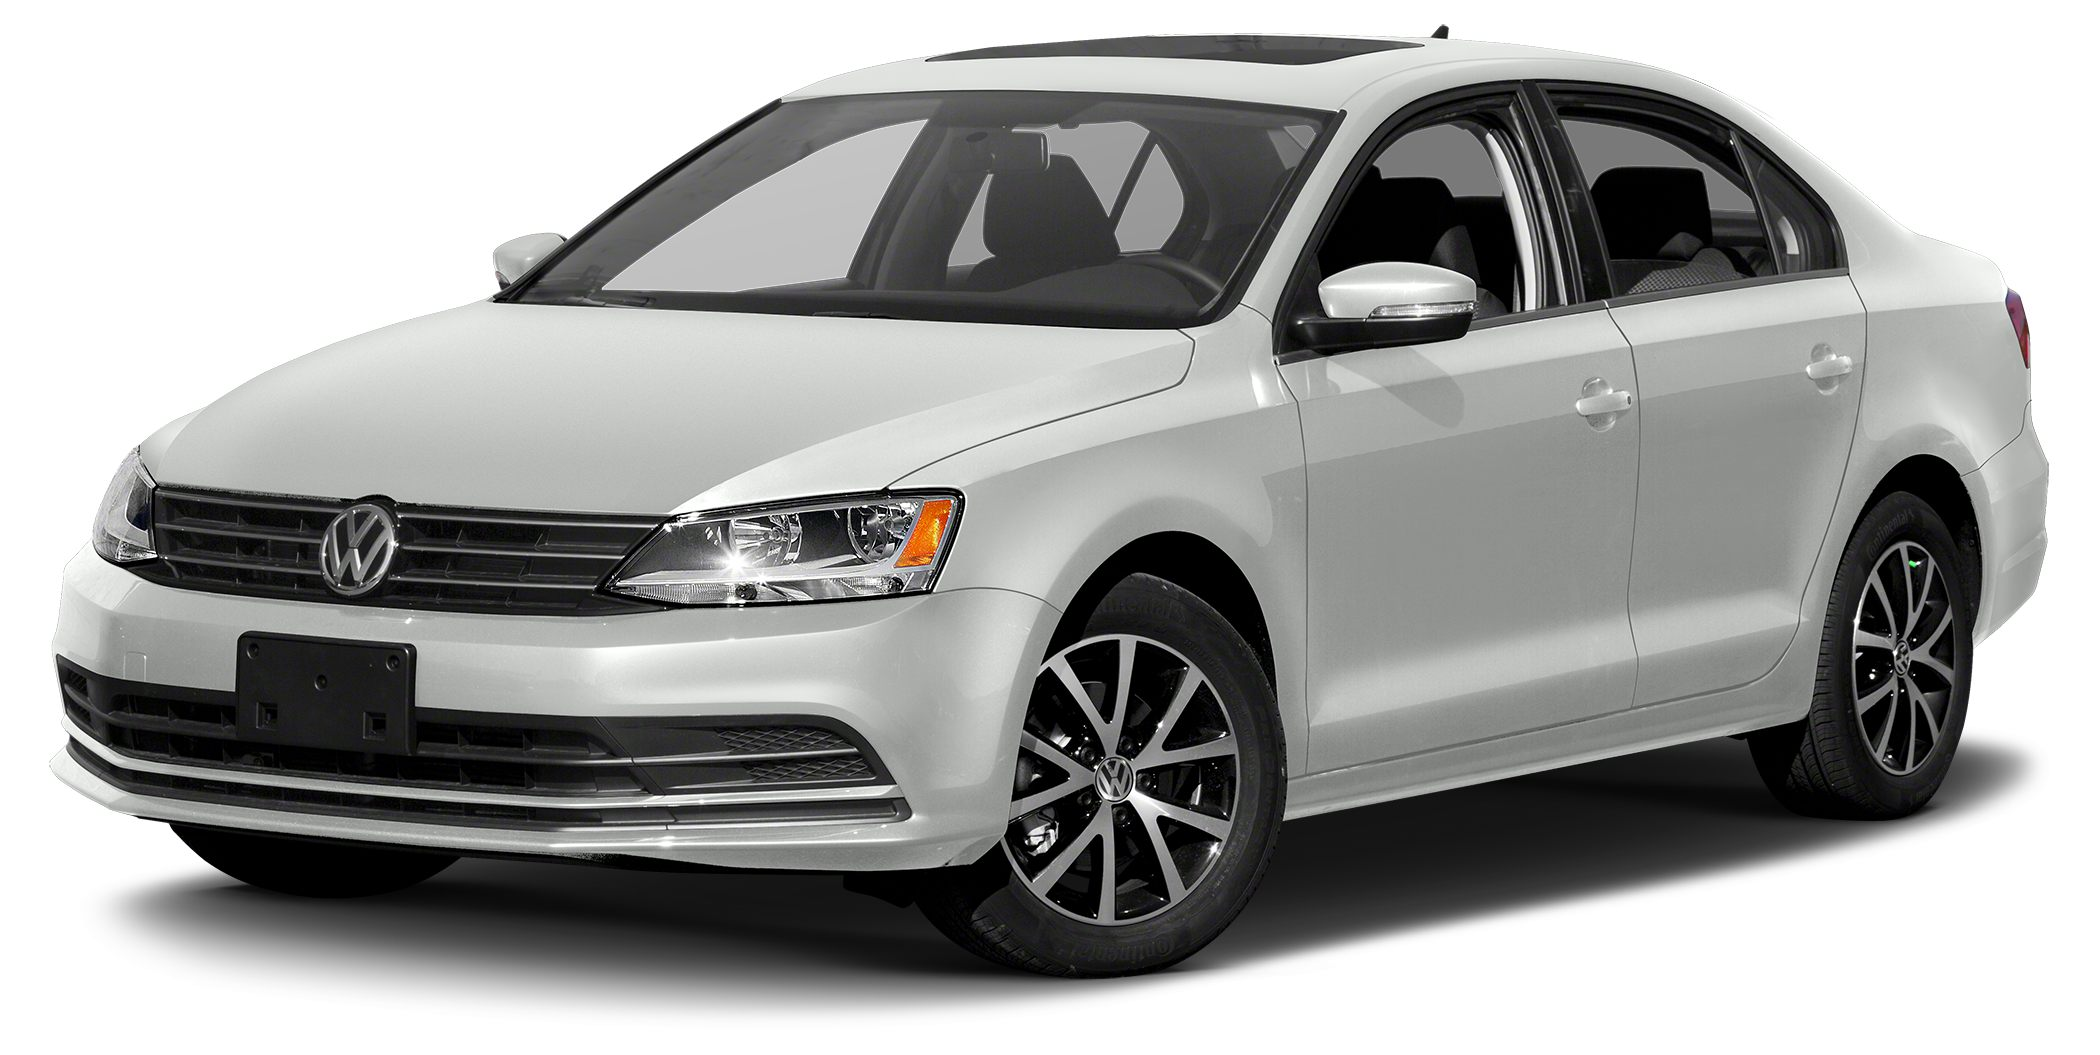 2015 Volkswagen Jetta TDI SE ONE PRICE STOP NO HASSLE NO HAGGLE CAR BUYING EXPERIENCE